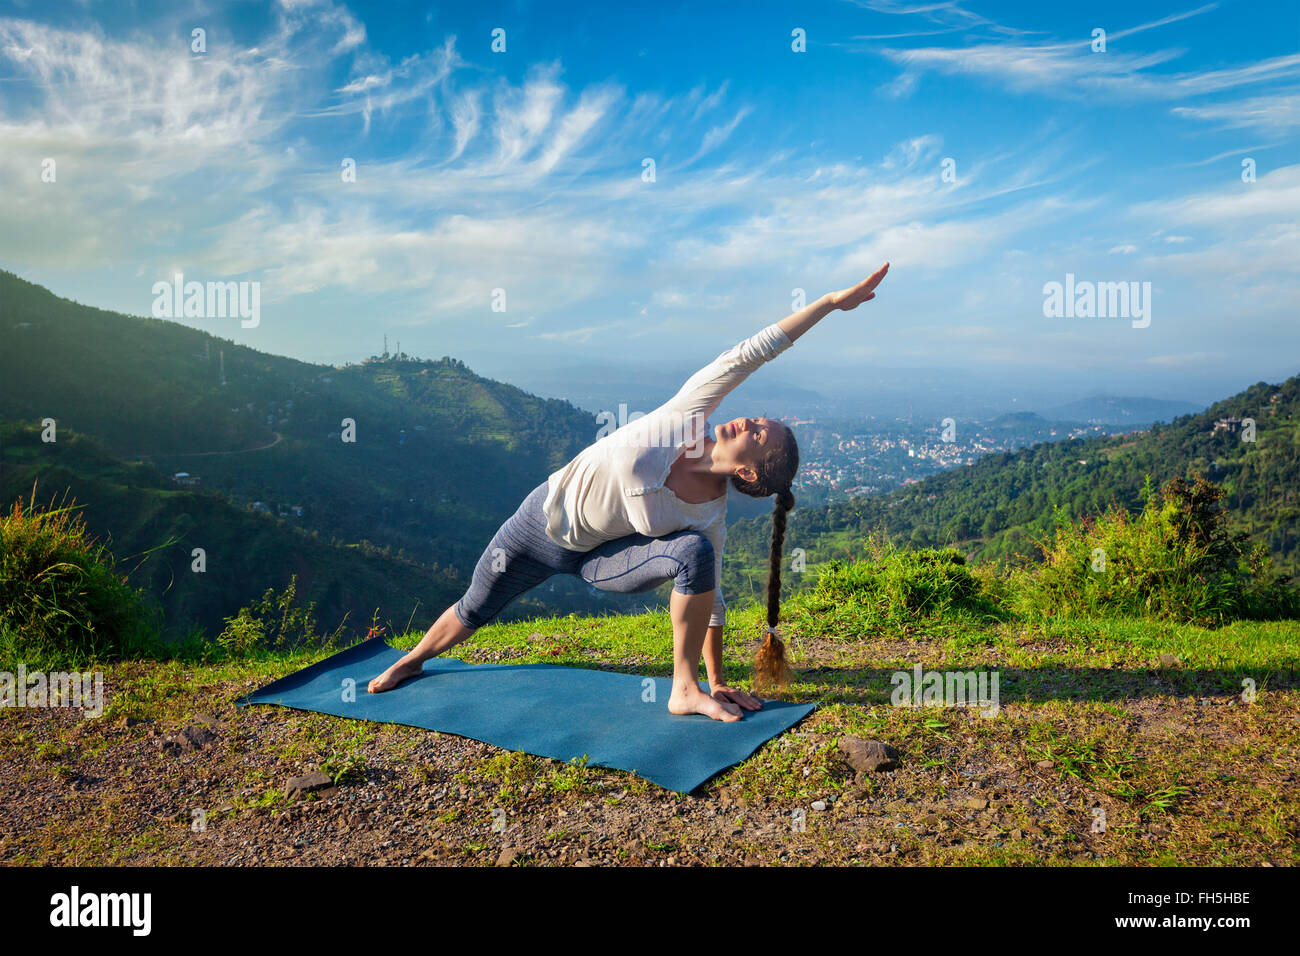 Woman practices yoga asana outdoors - Stock Image